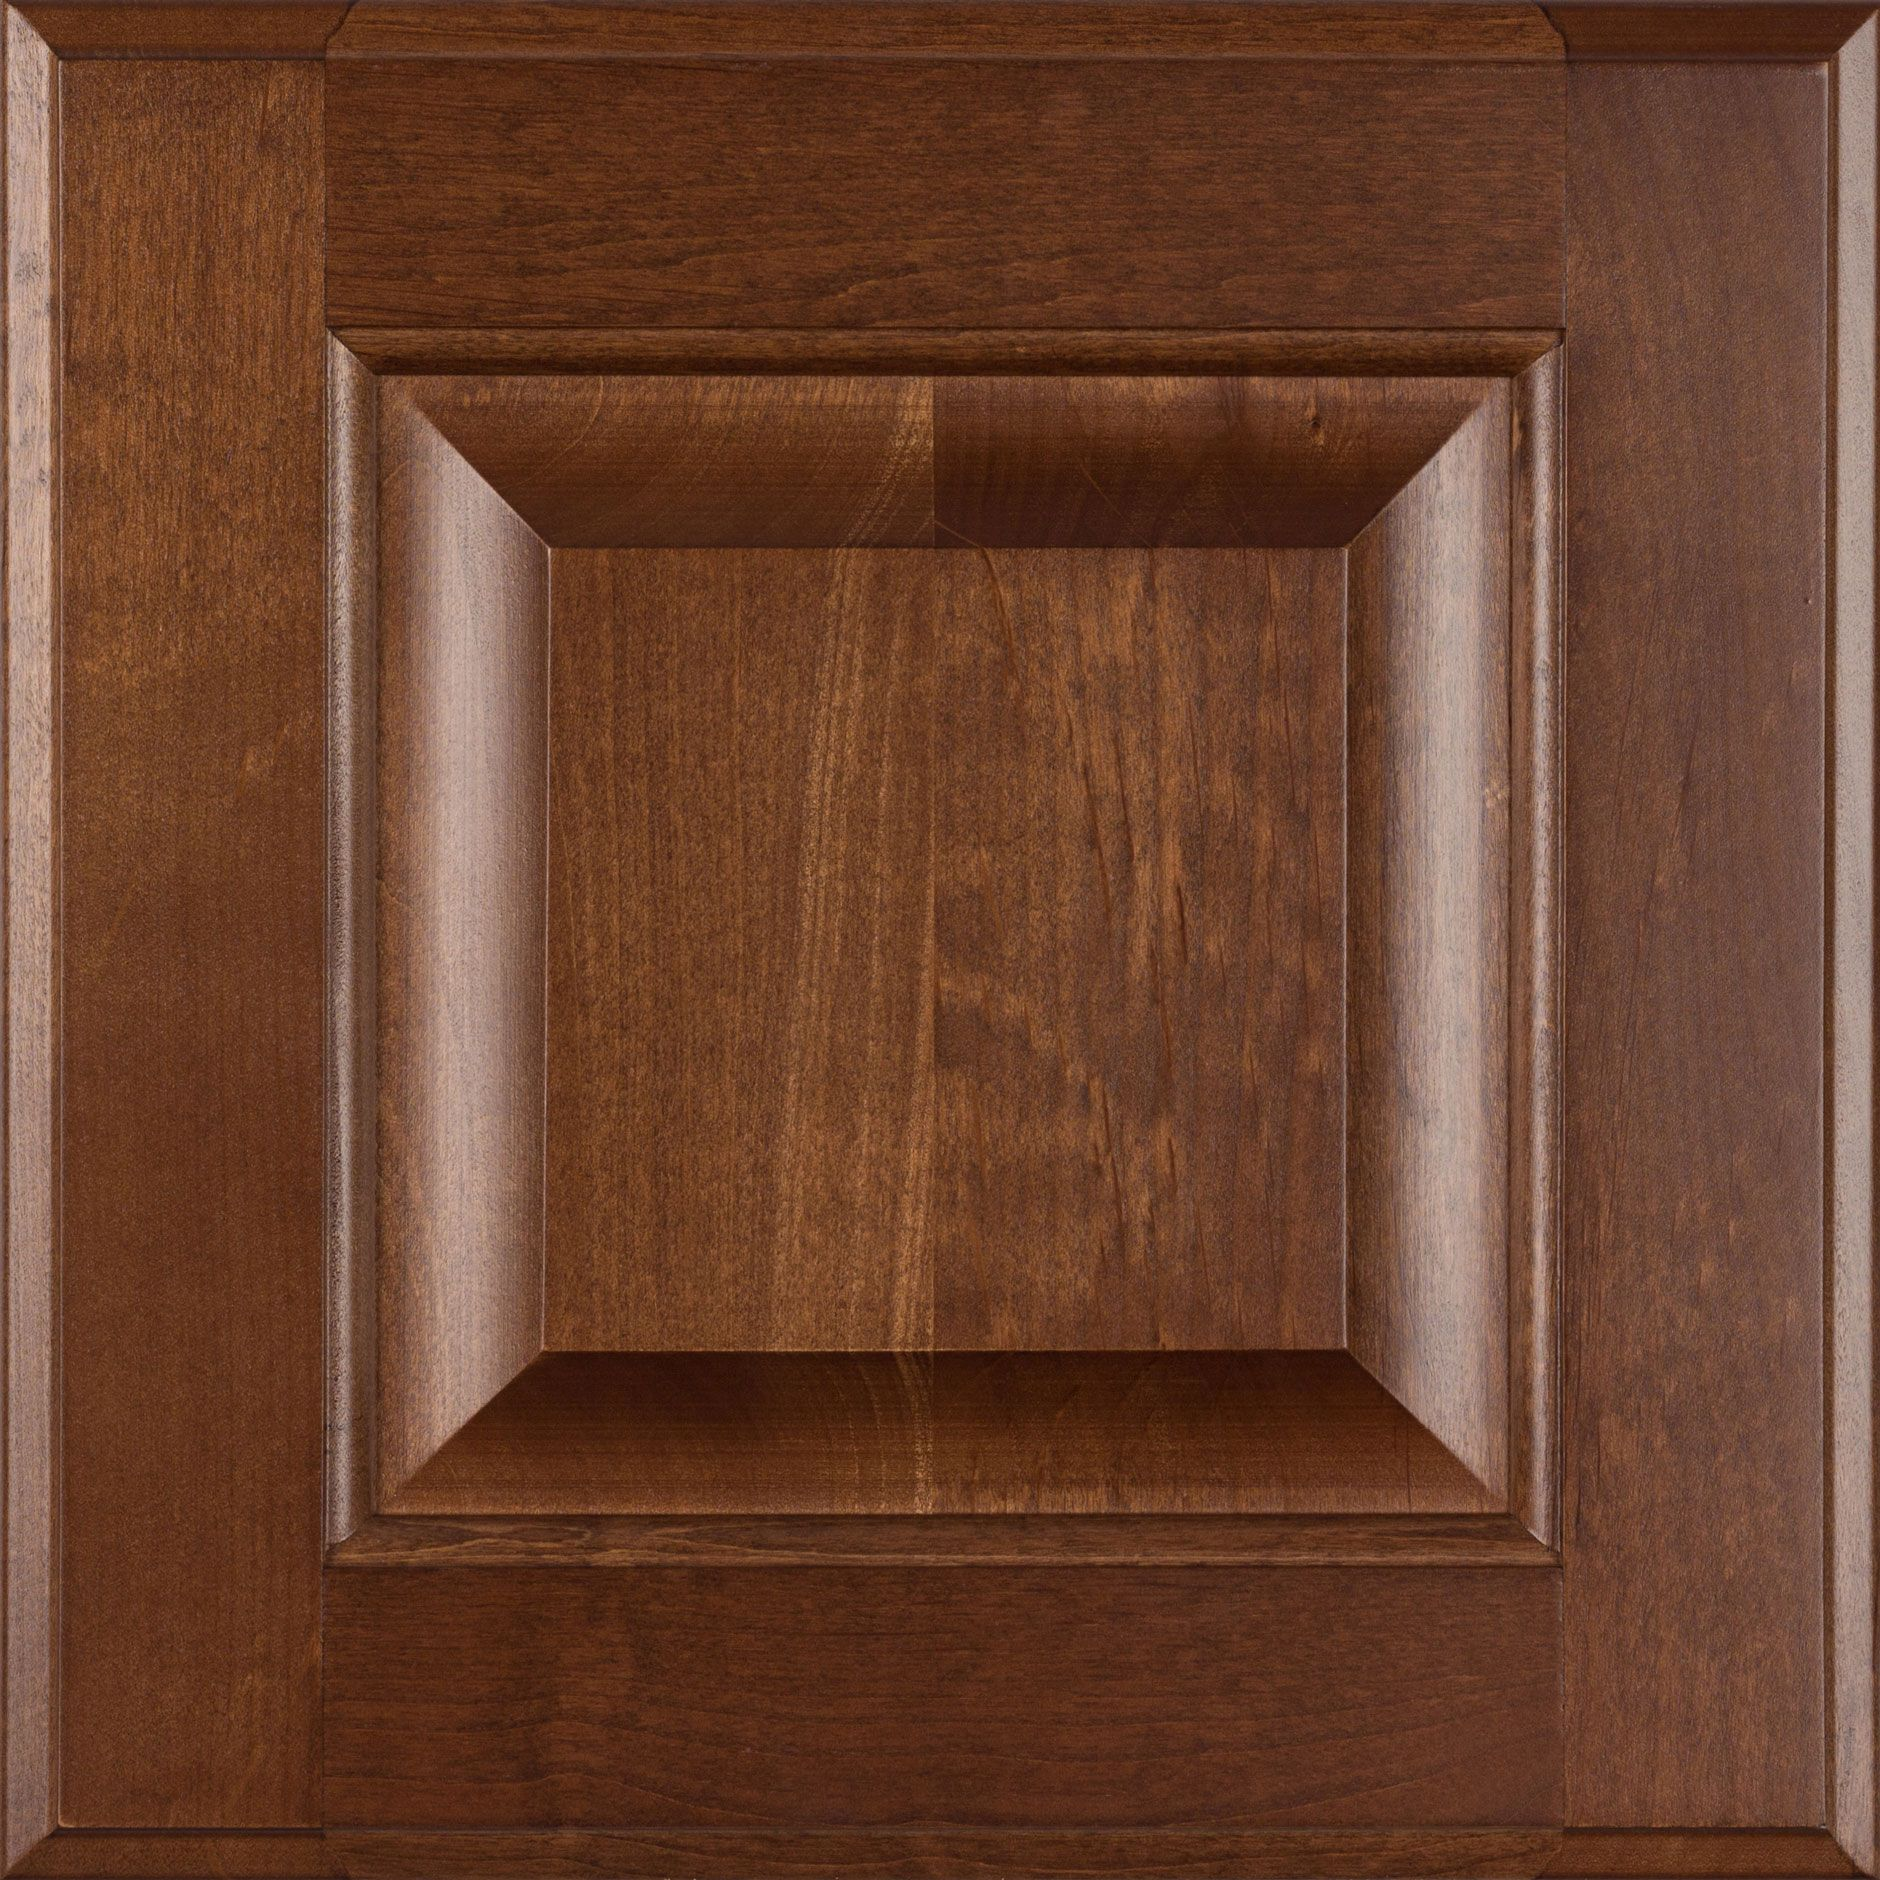 Clear Kitchen Cabinet Doors: Burrows Cabinets Clear Alder Door In Ambrose